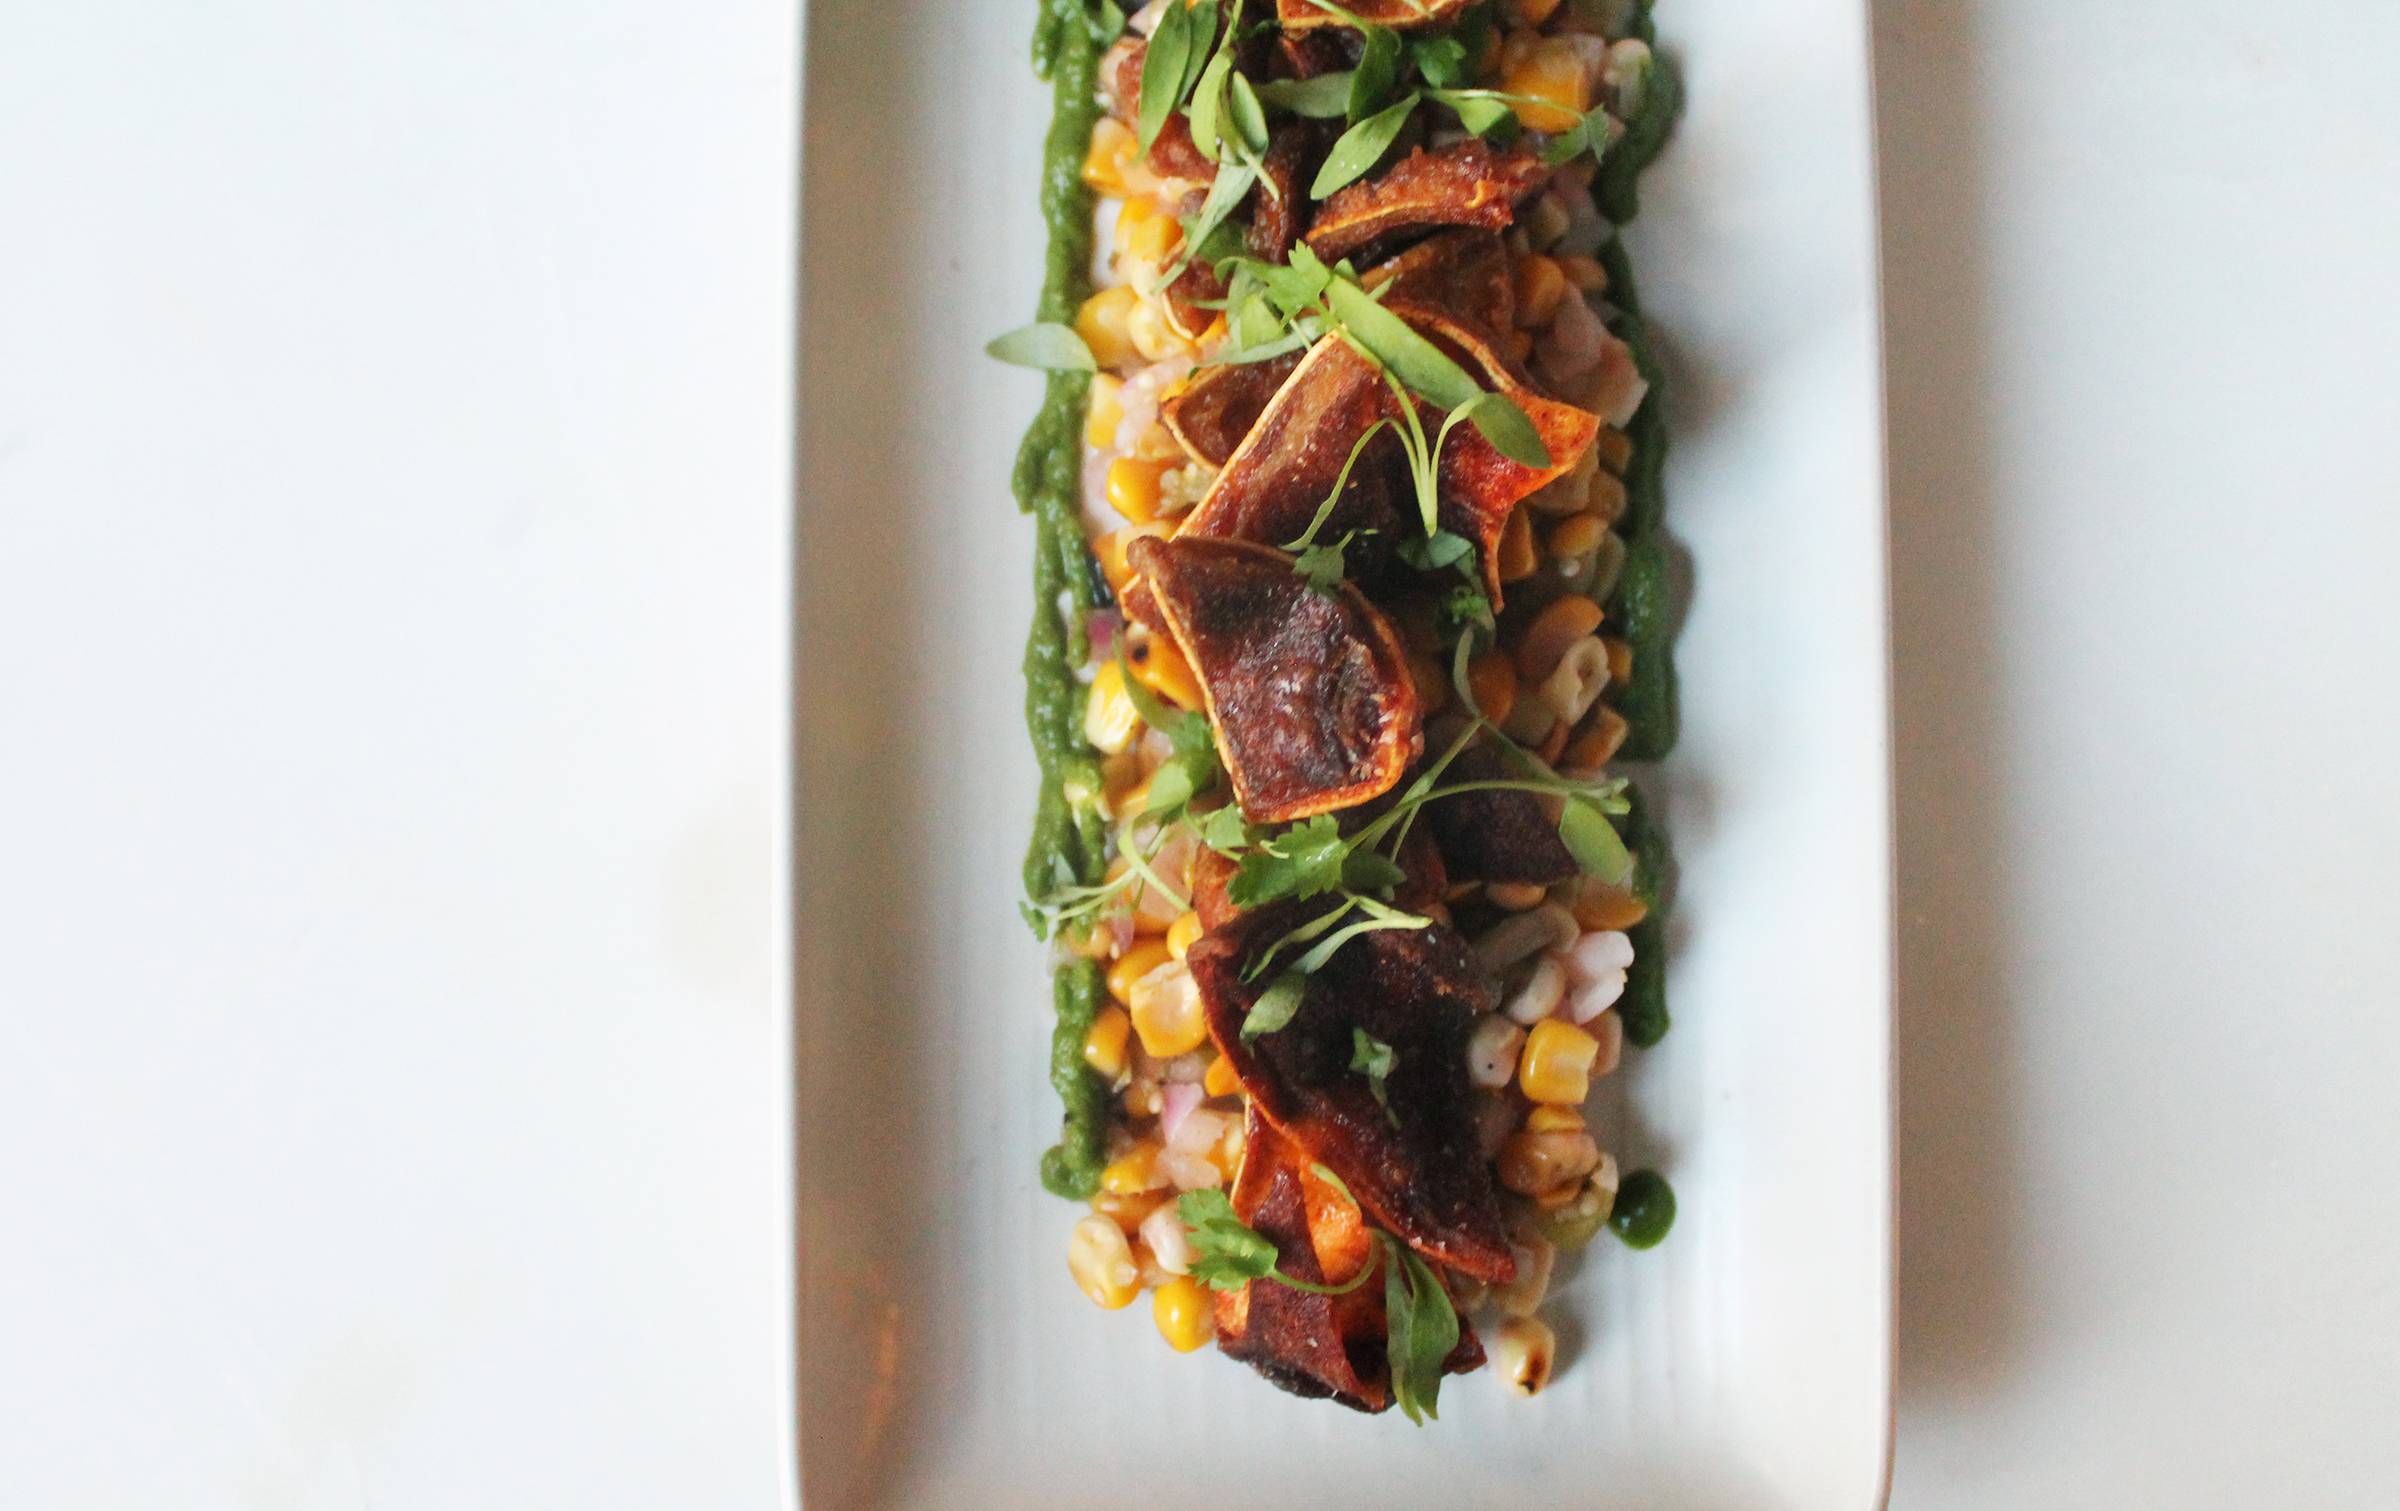 Summer corn and tomatillo salad with crispy pig ears